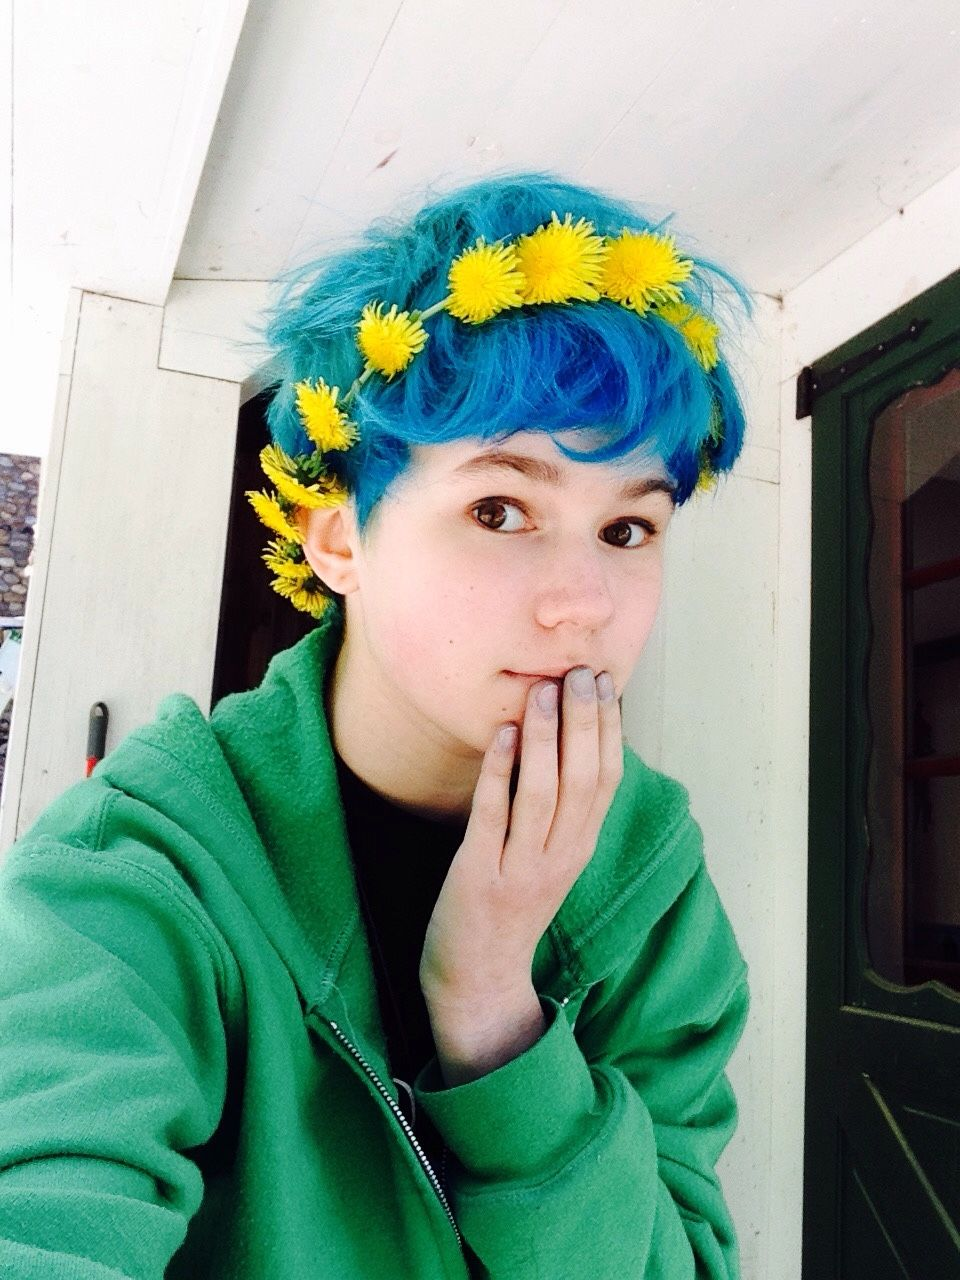 Blue hair with yellow flower crowns is so cute awesome hair in